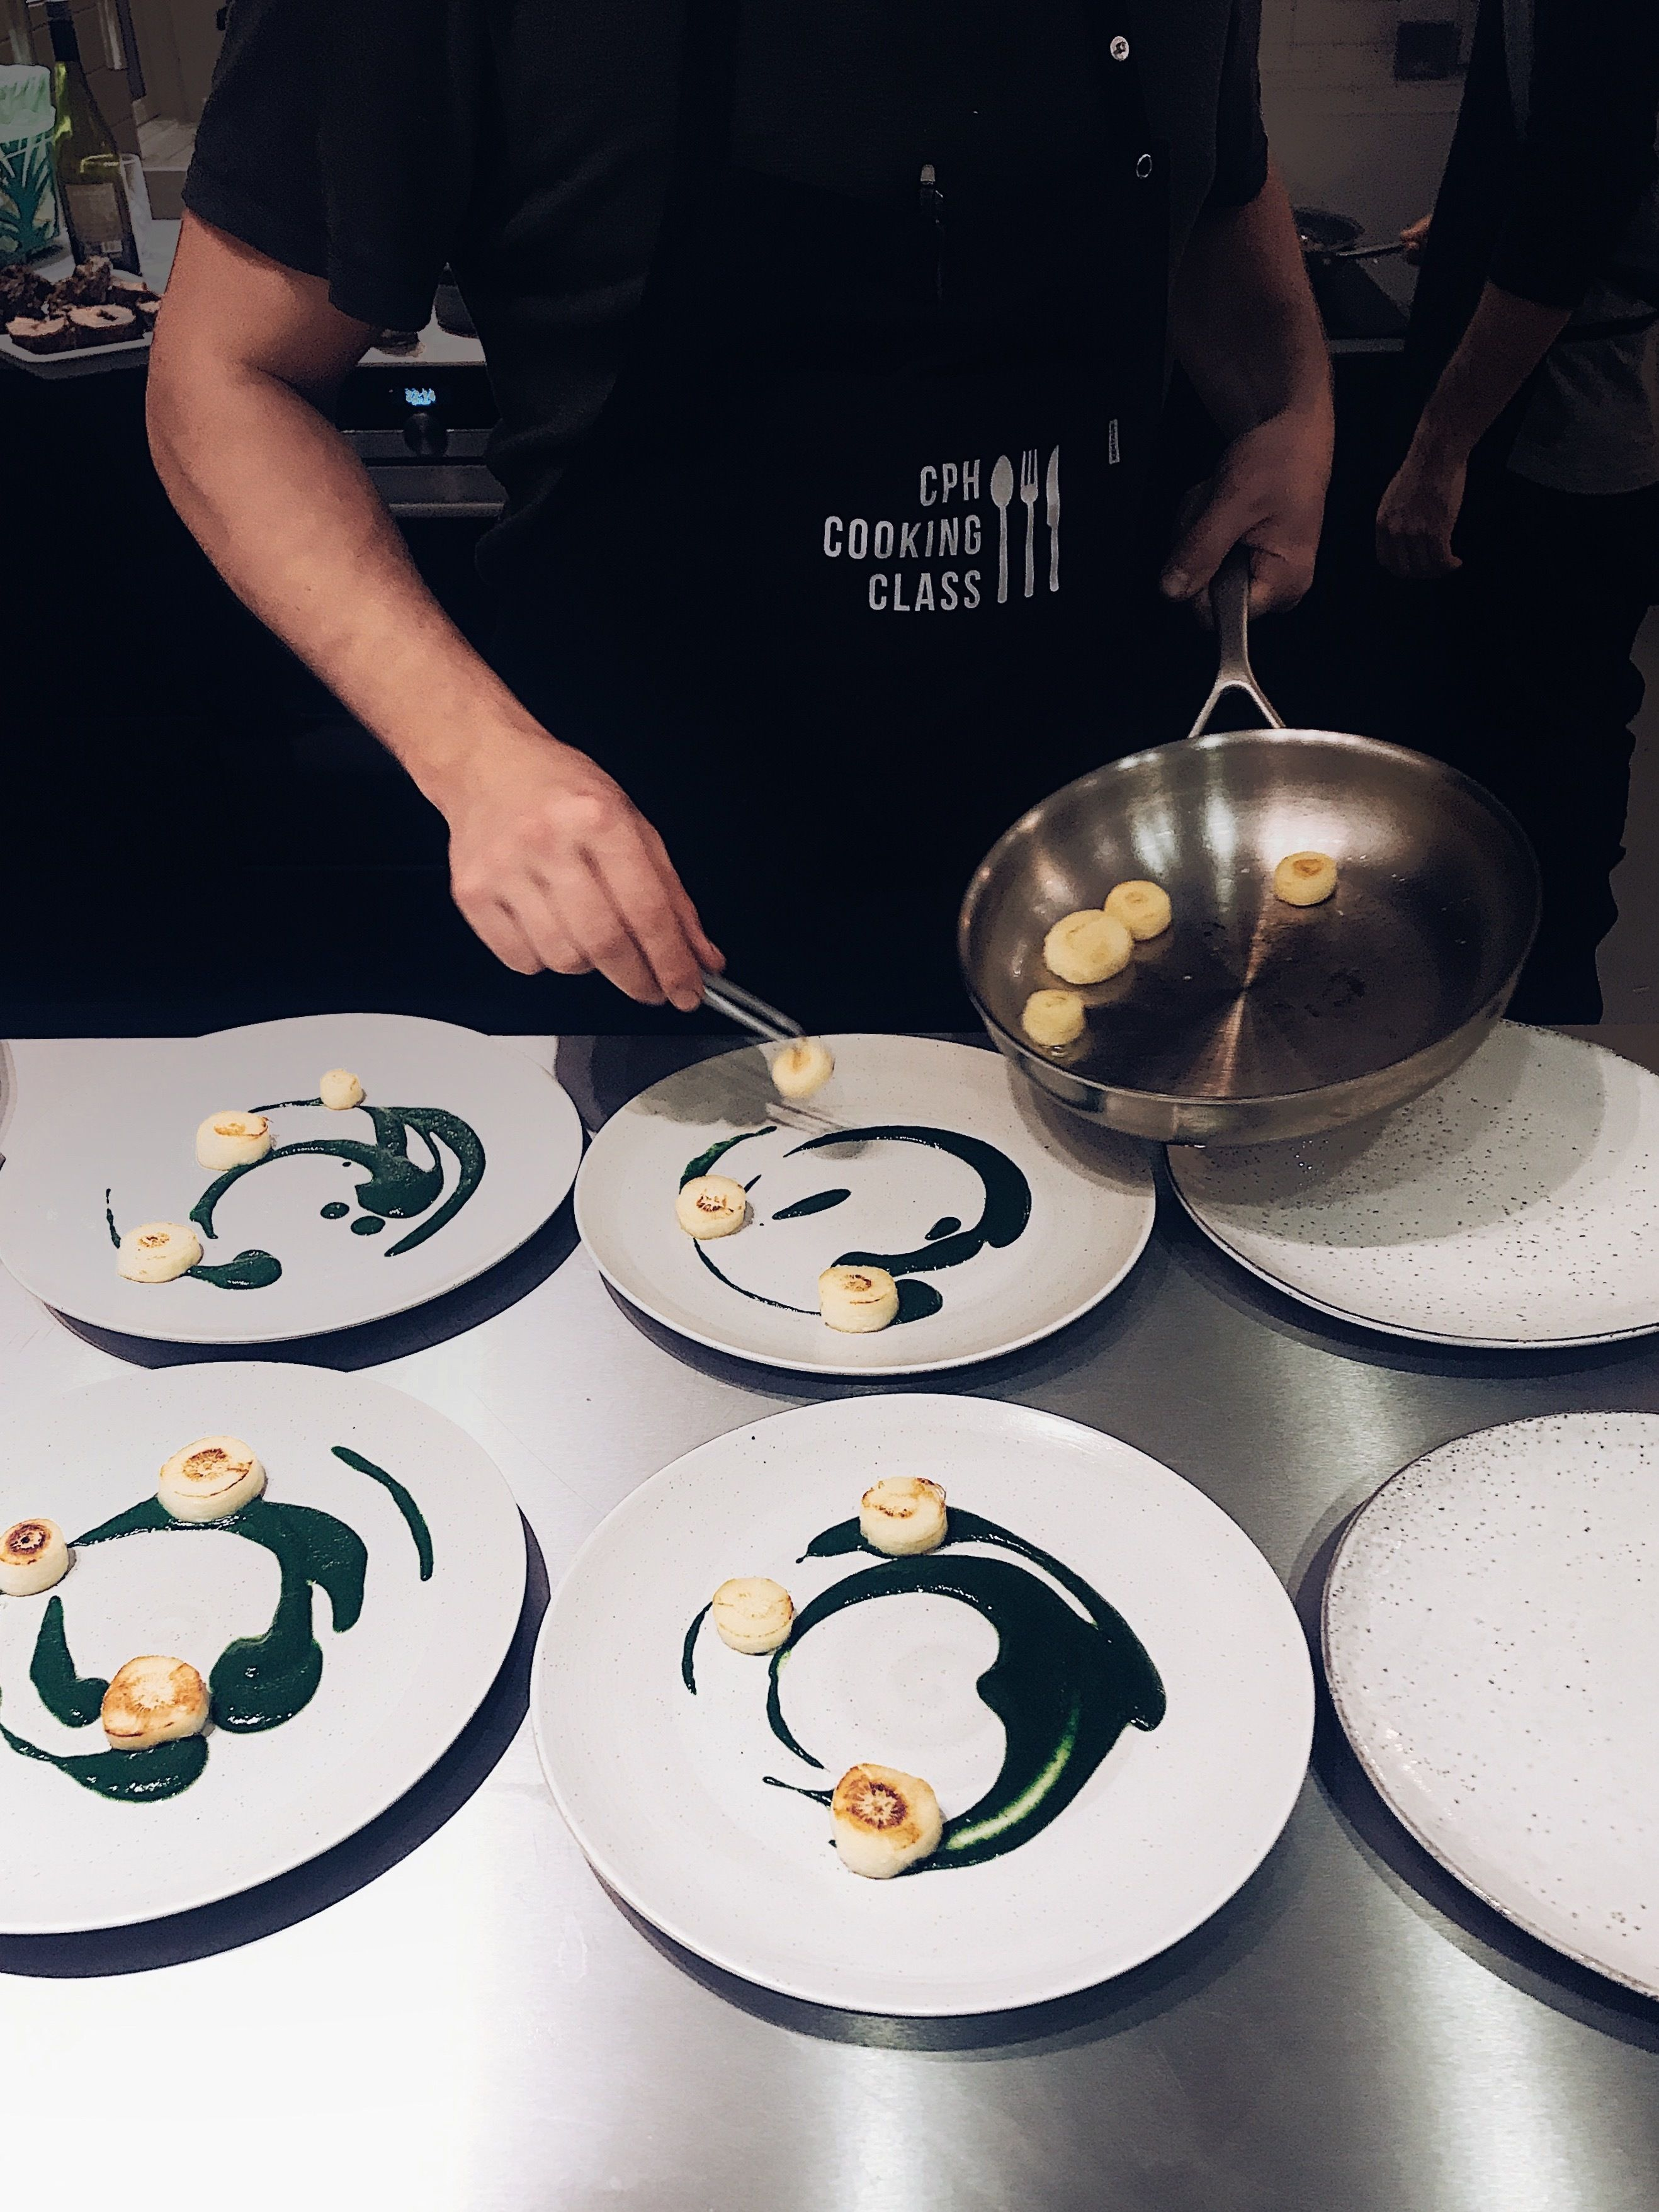 Plating dishes in a Nordic Cooking class